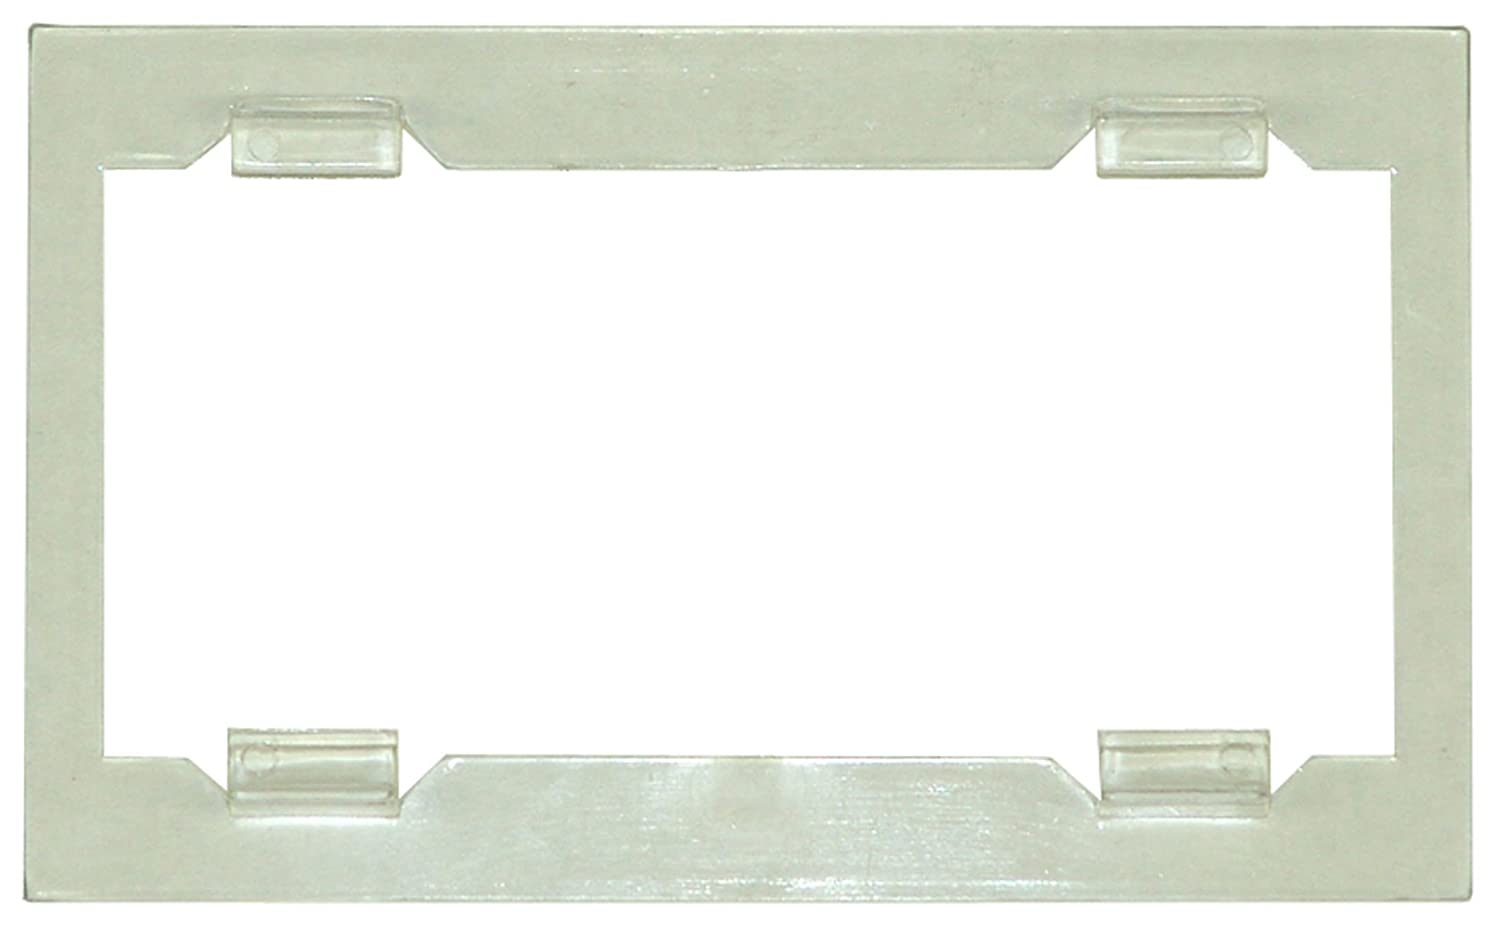 Jackson Safety 15975 98-2 Executive ADF Magnifying Lens Holder (Pack of 12) by Jackson Safety  B008D85OAW